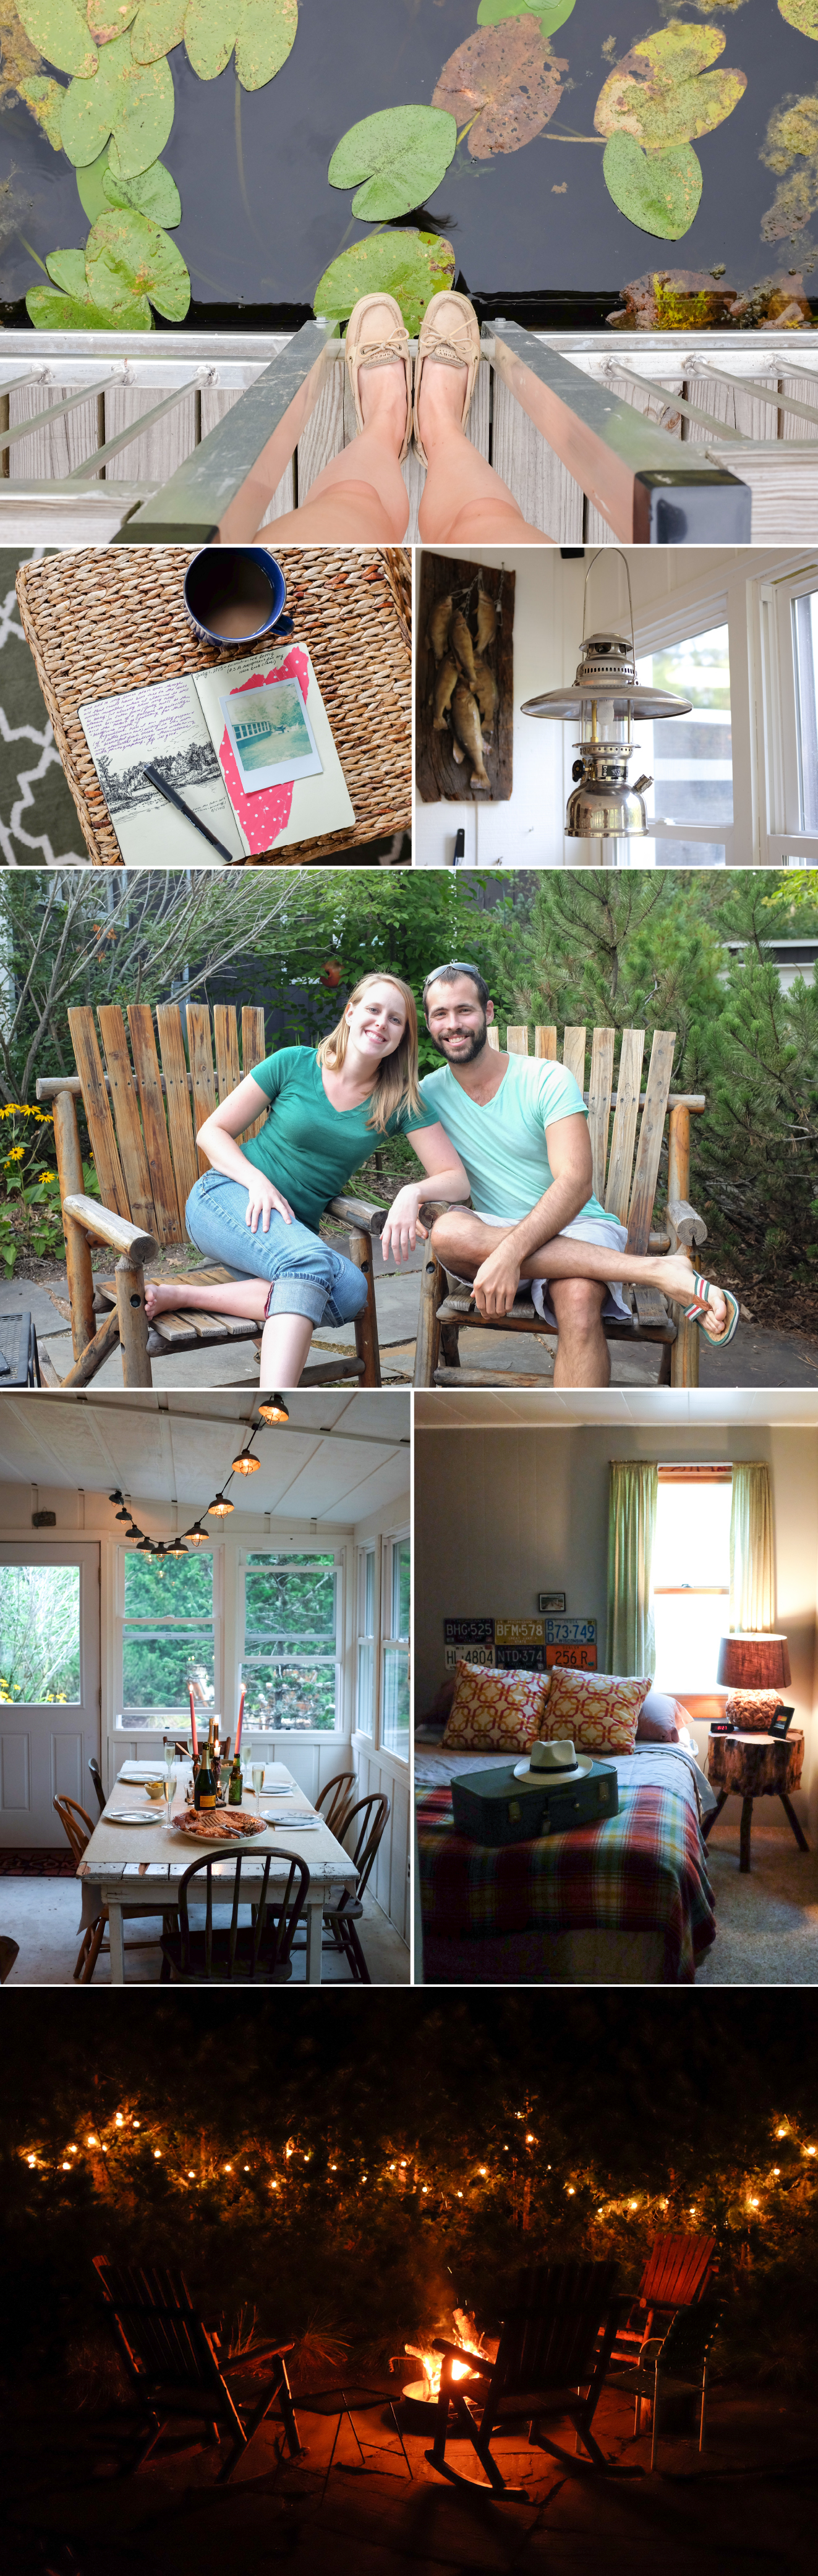 Crivitz-Northwoods-Vacation-Friends-Cabin-Kasey-and-Ben-Travel-Wisconsin